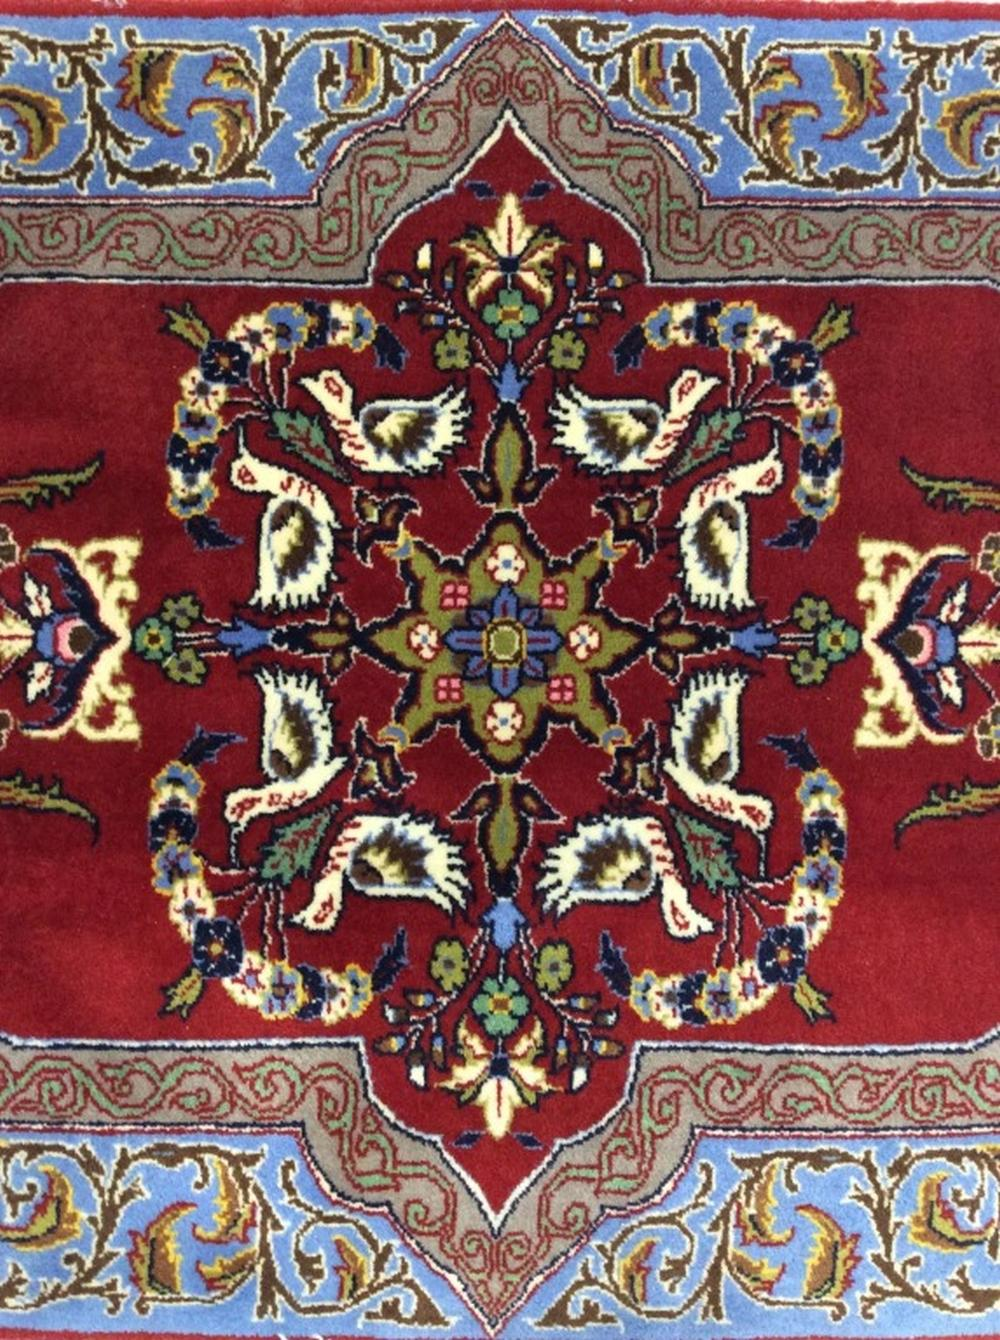 Hand Knotted Wool Pile Iranian Carpet